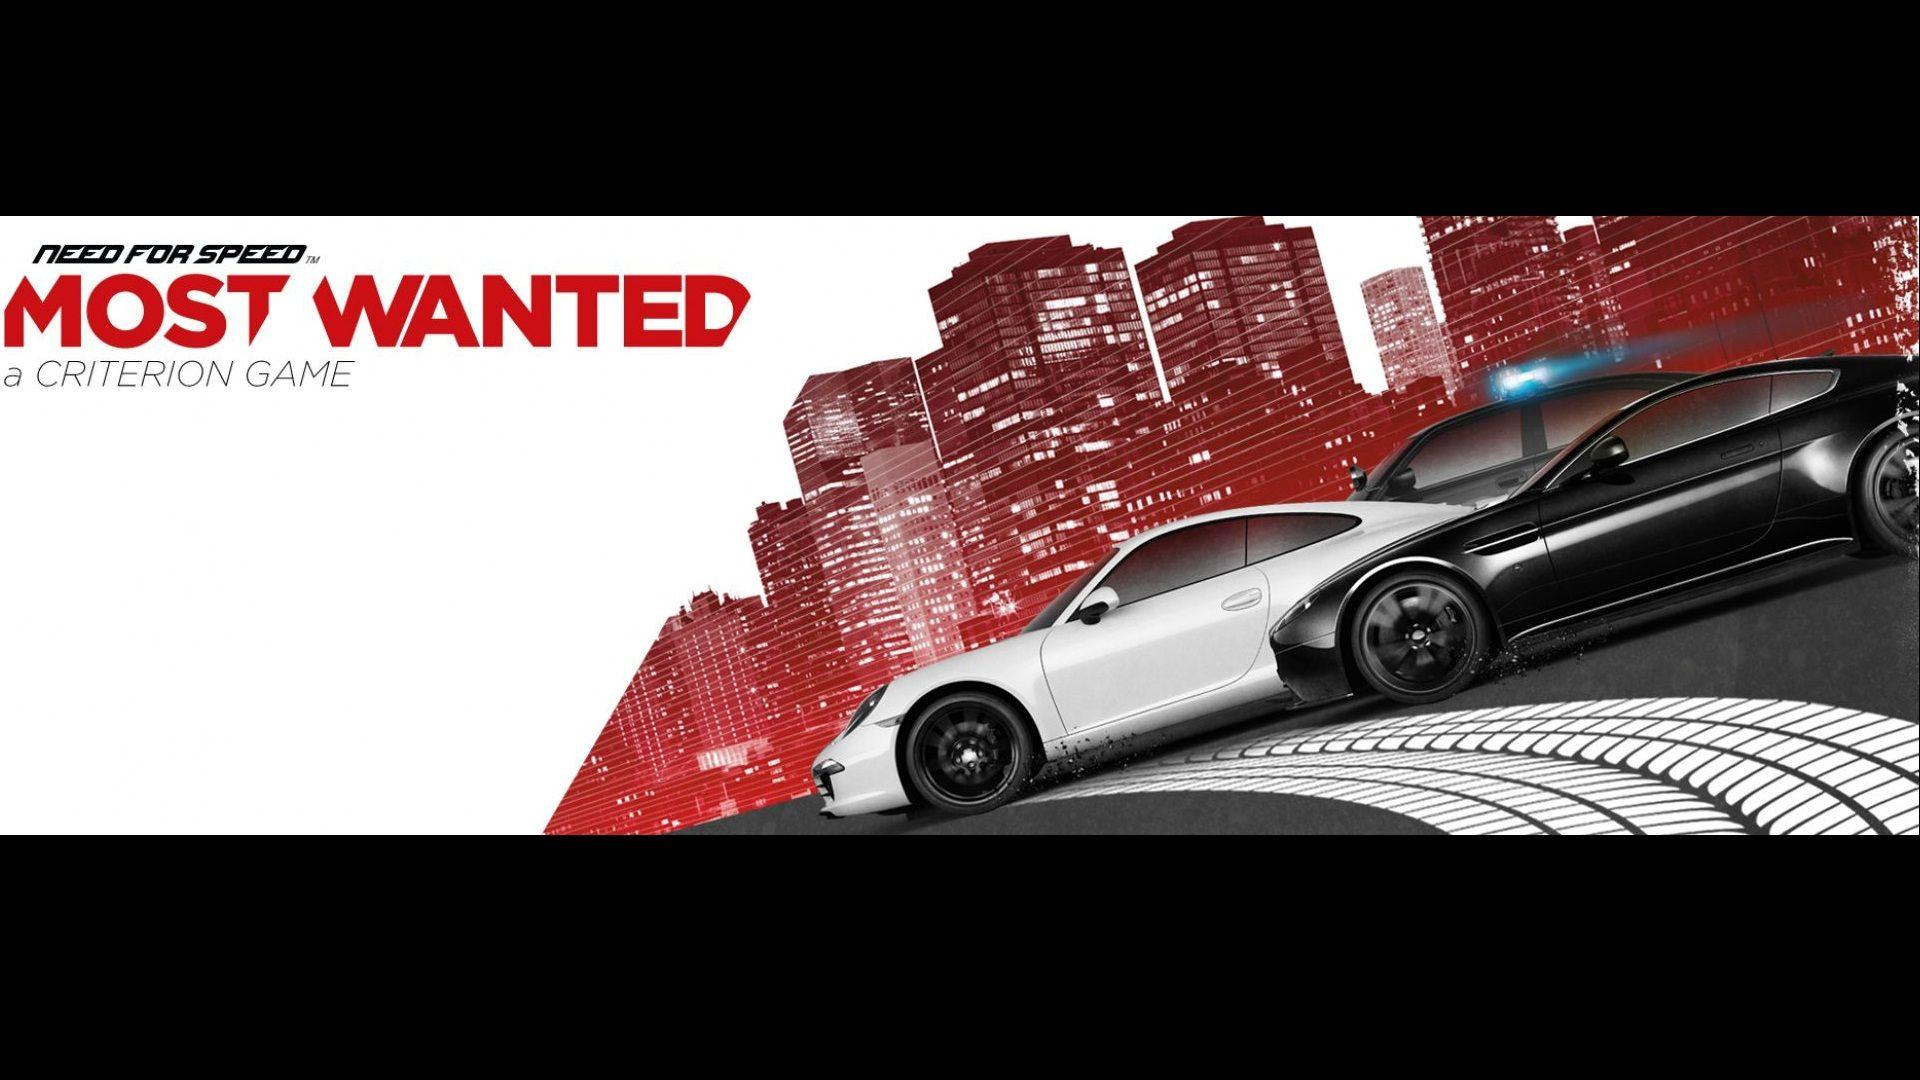 1920x1080px #706398 Need For Speed Most Wanted 2012 (323.67 KB ...